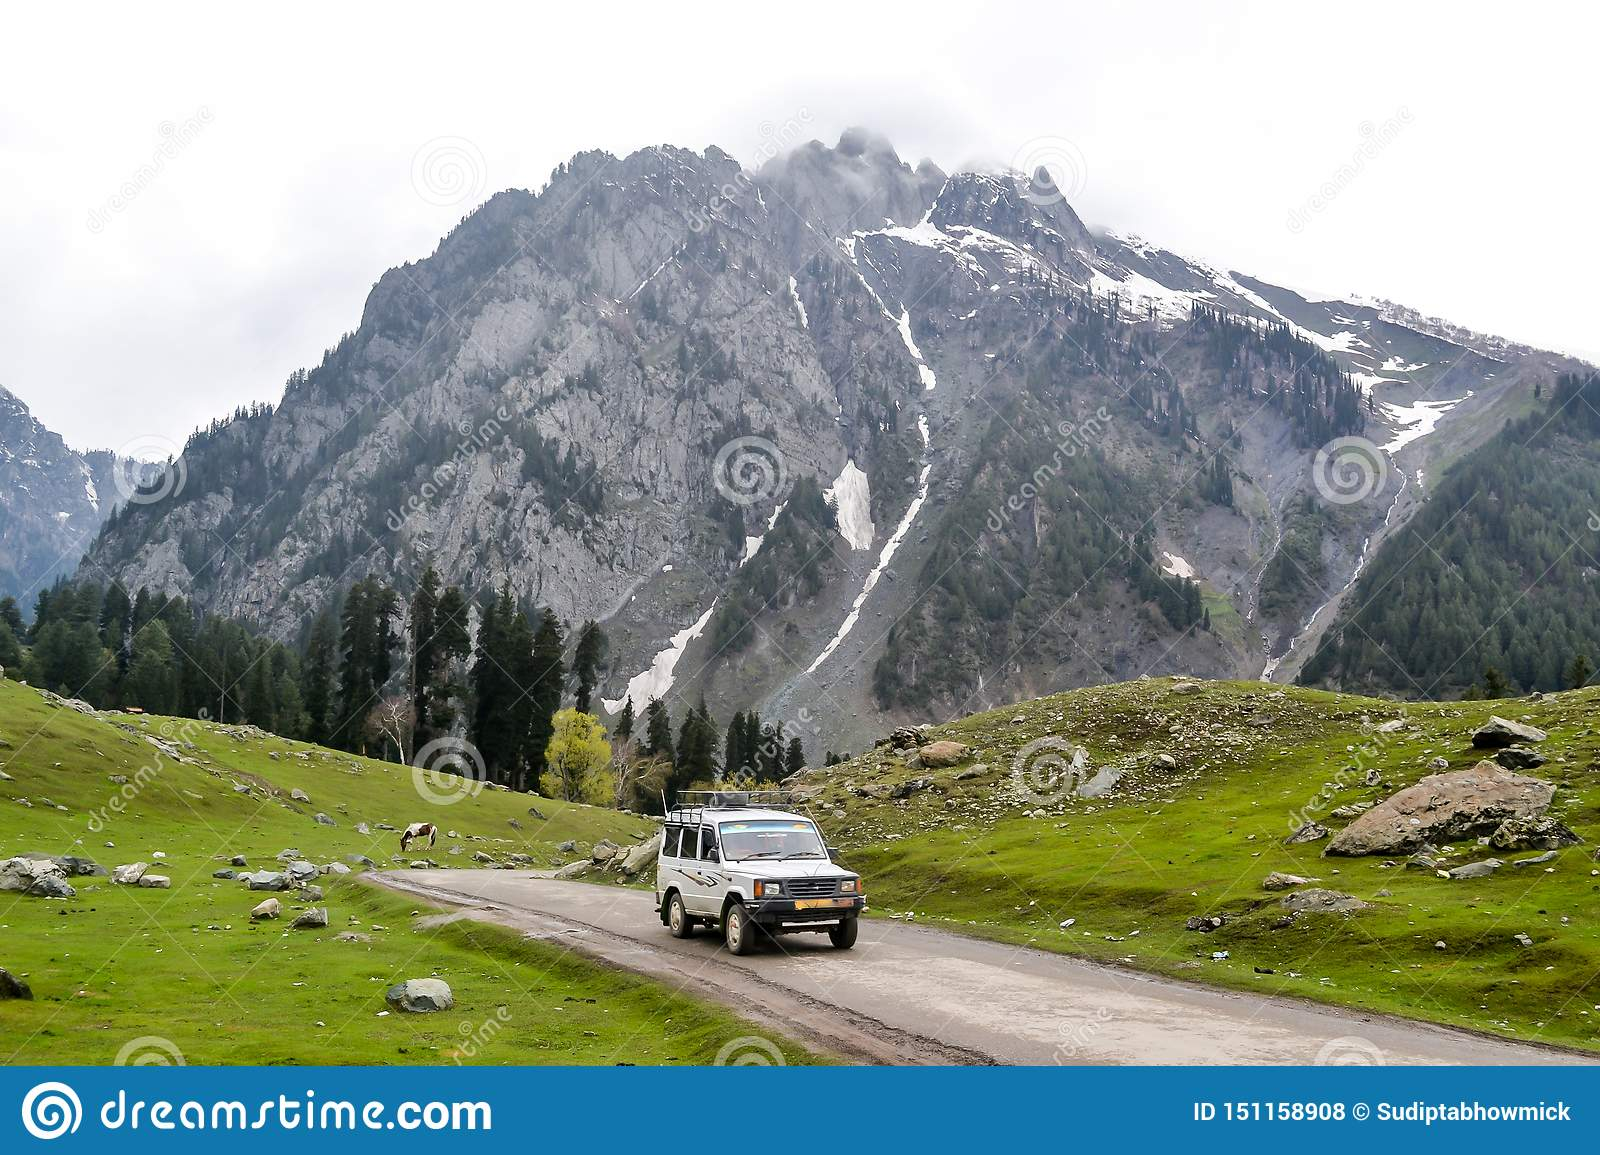 Off Road Suv Driving On The Rock Mountain Road In Kashmir